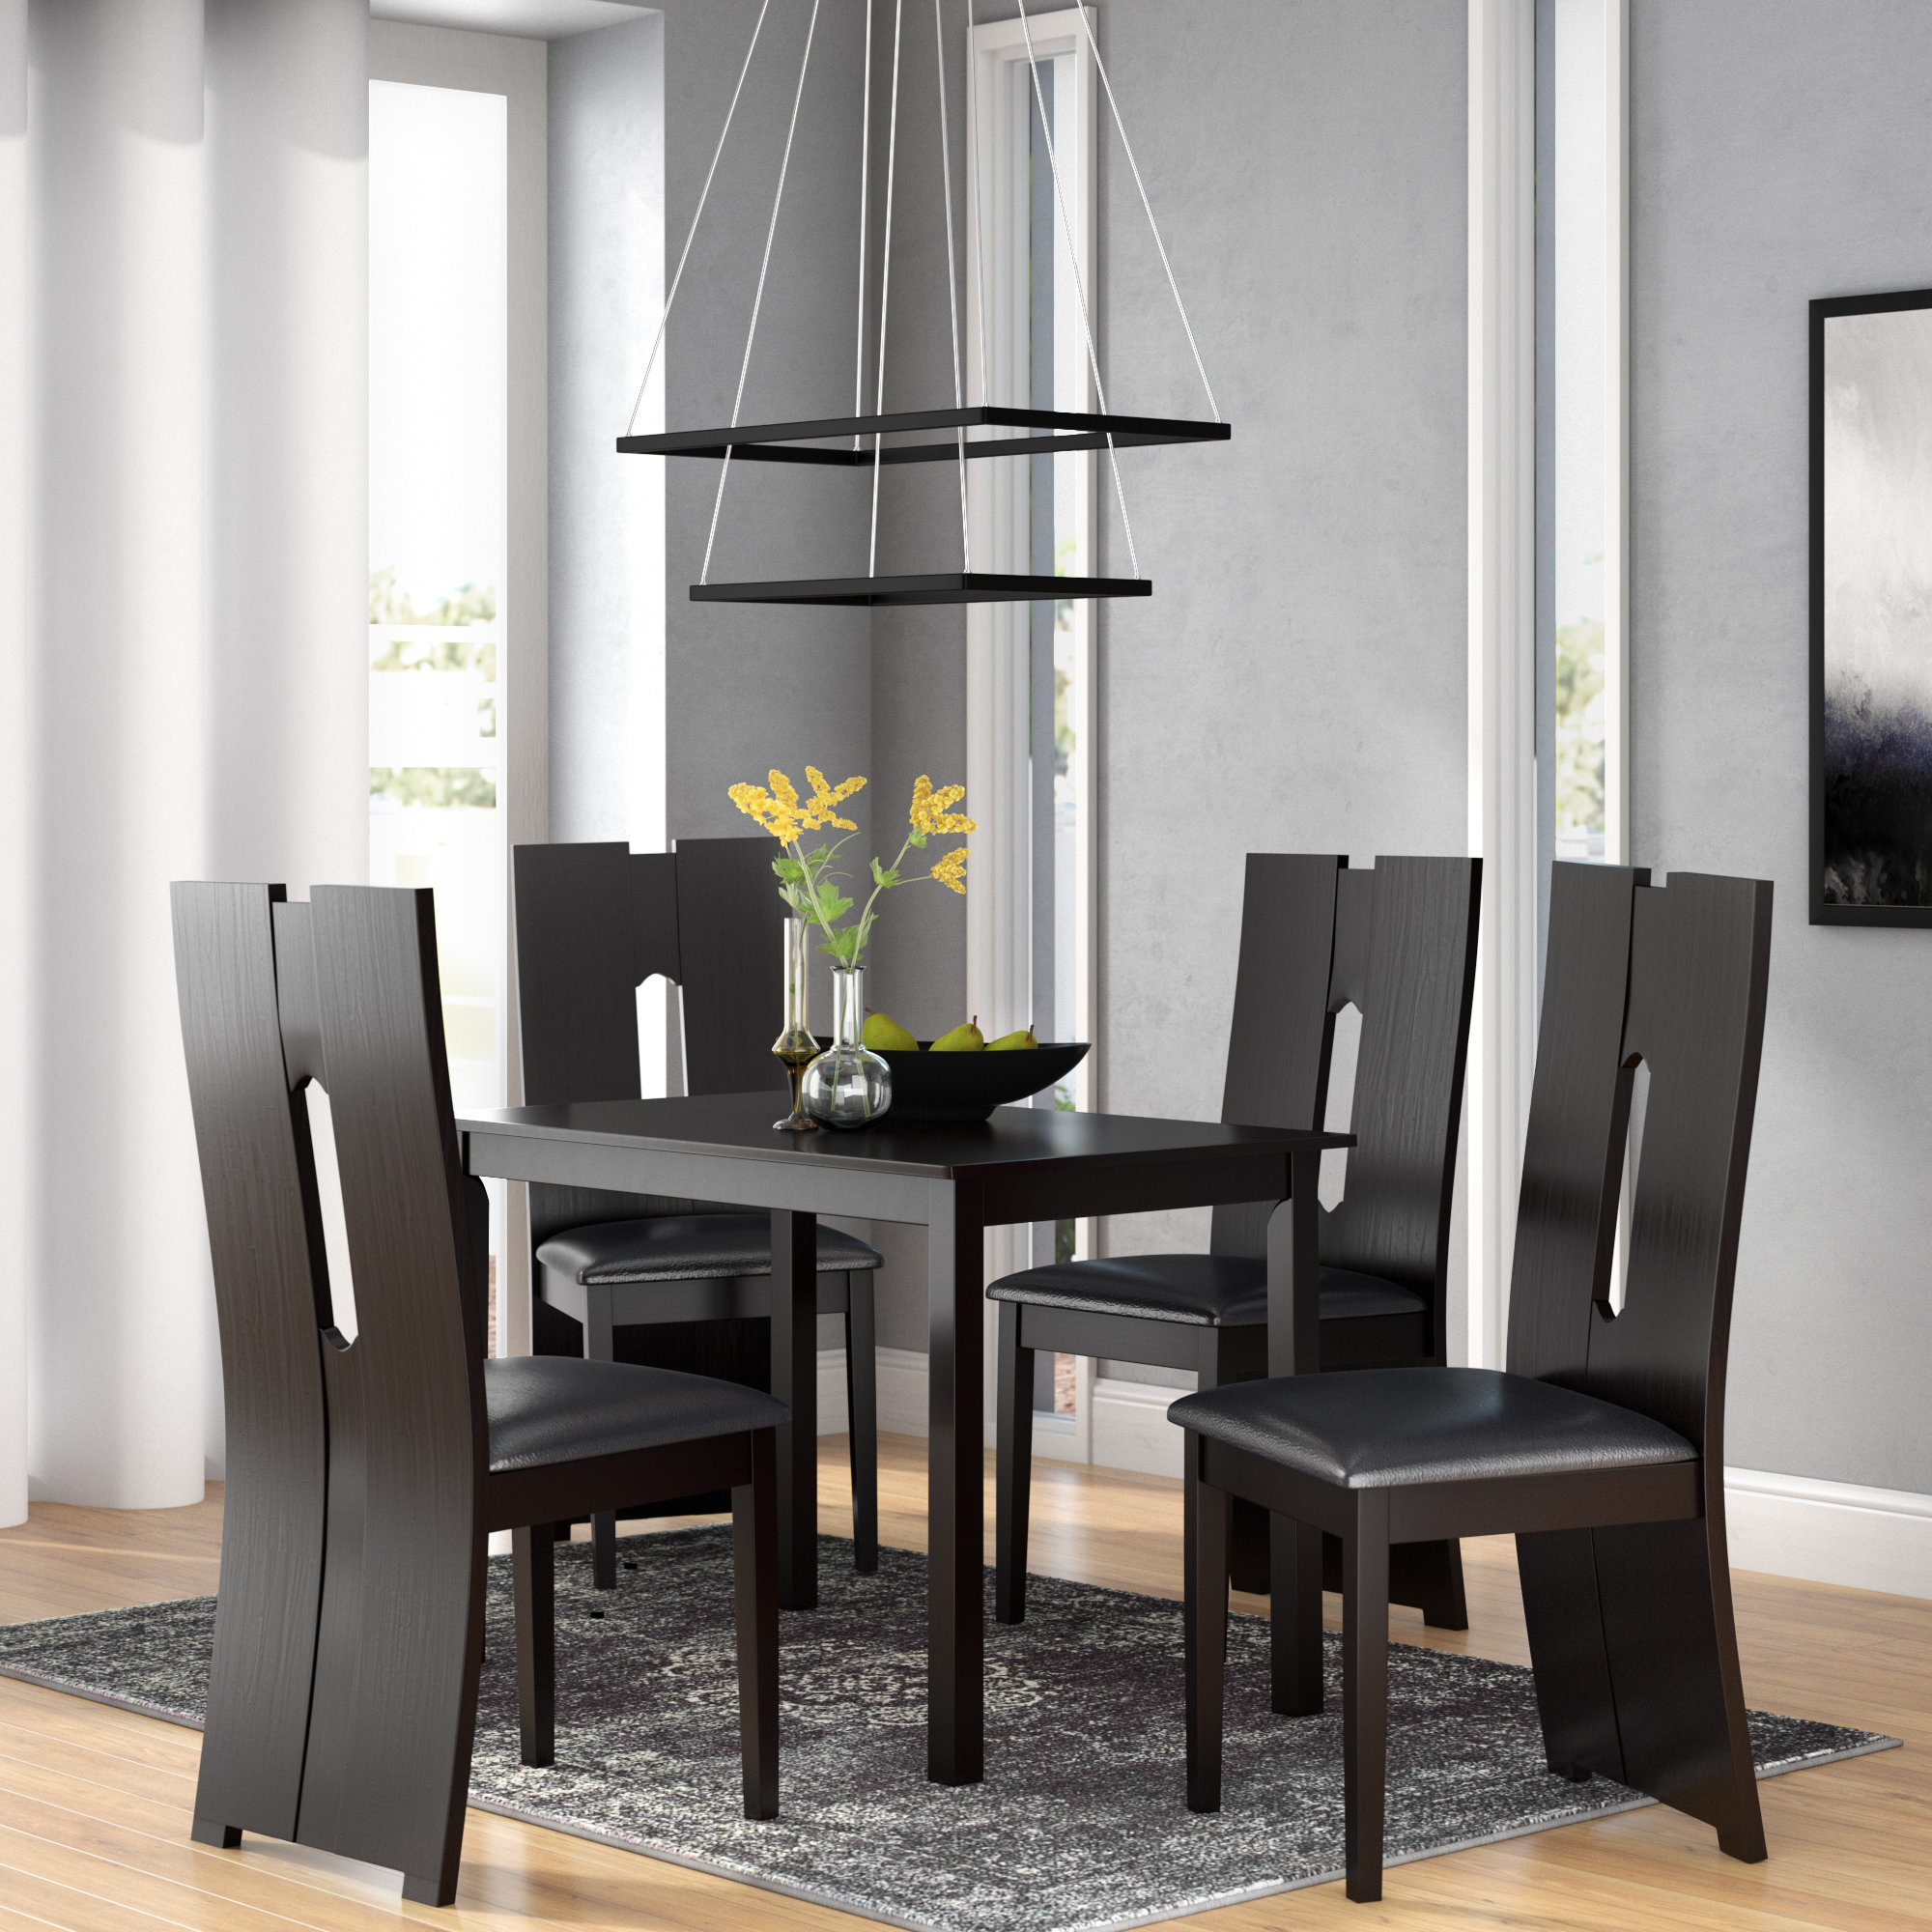 Favorite 5 Piece Breakfast Nook Dining Sets With Regard To Onsted Modern And Contemporary 5 Piece Breakfast Nook Dining Set (View 7 of 20)